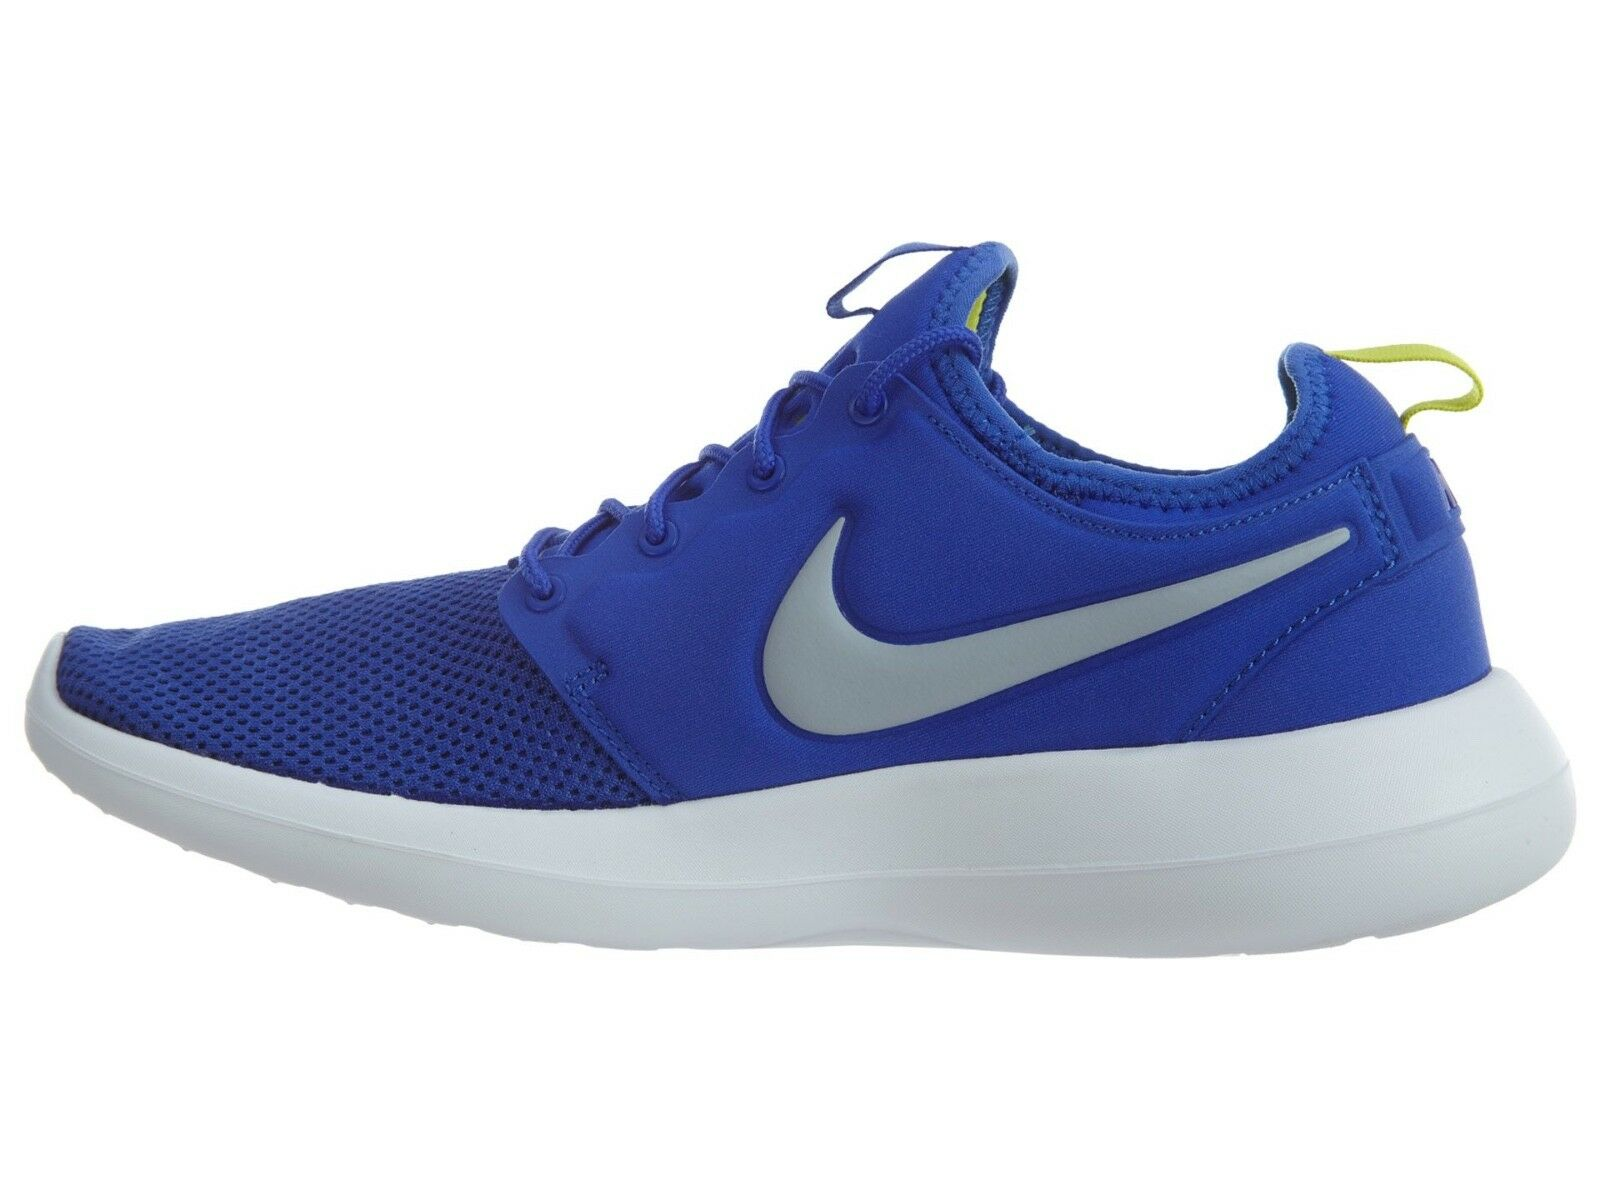 Men's Brand New Nike Roshe Two Athletic Fashion Sneakers [844656 401]